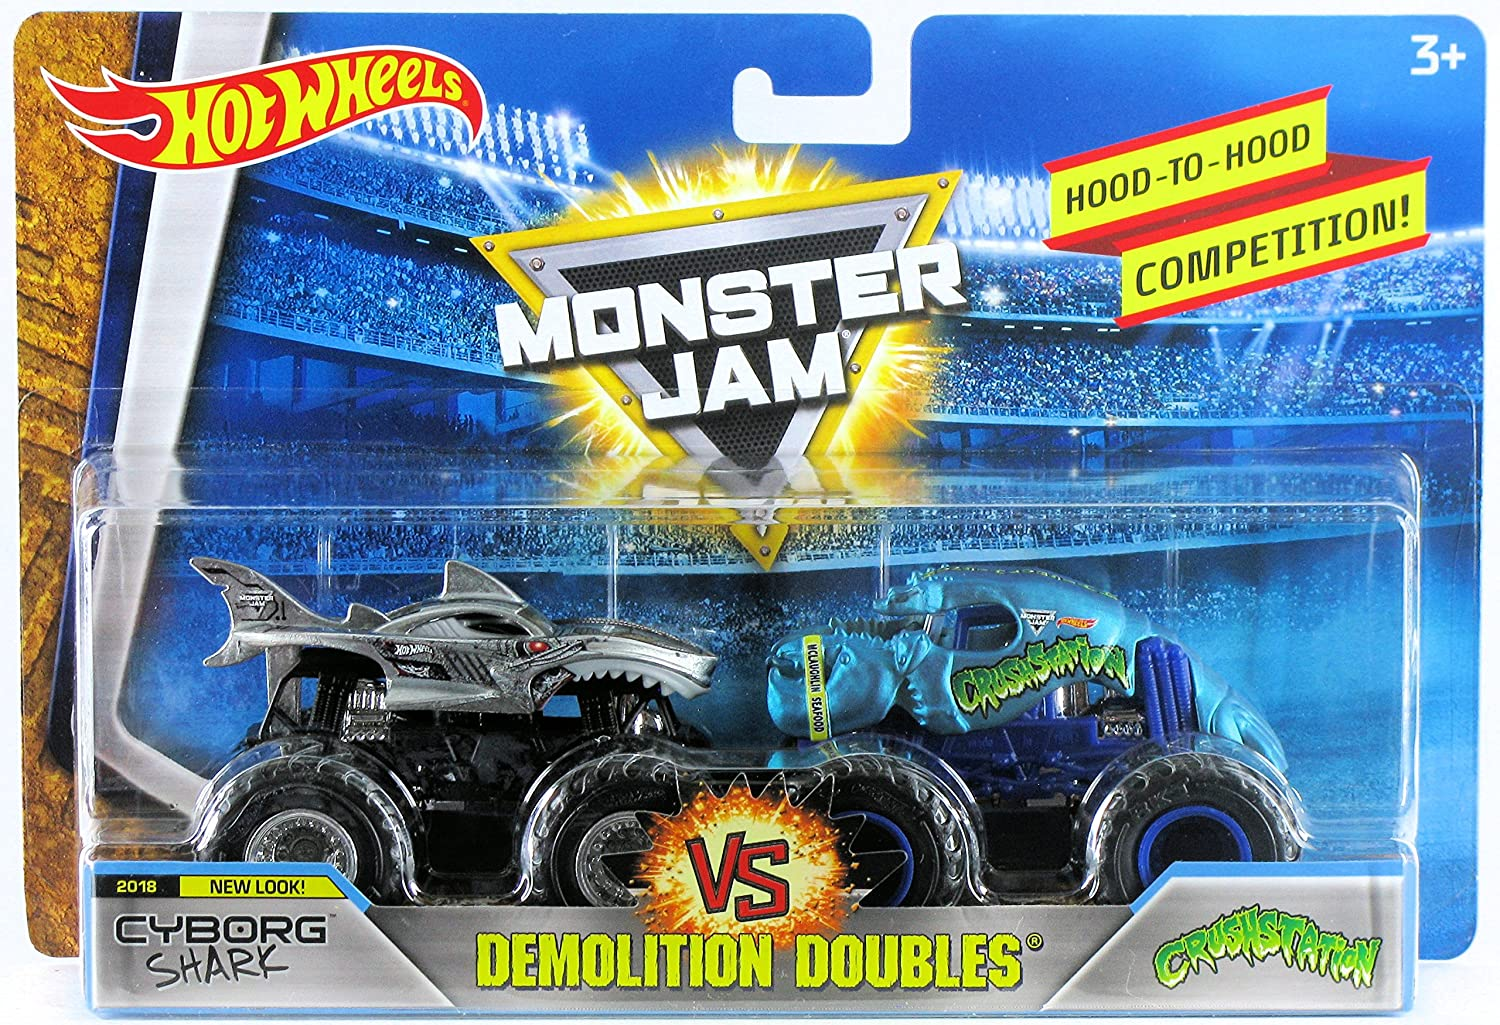 Amazon Com Hot Wheels Monster Jam 1 64 Demolition Doubles 2018 New Look Cyborg Shark Vs Crushstation Toys Games